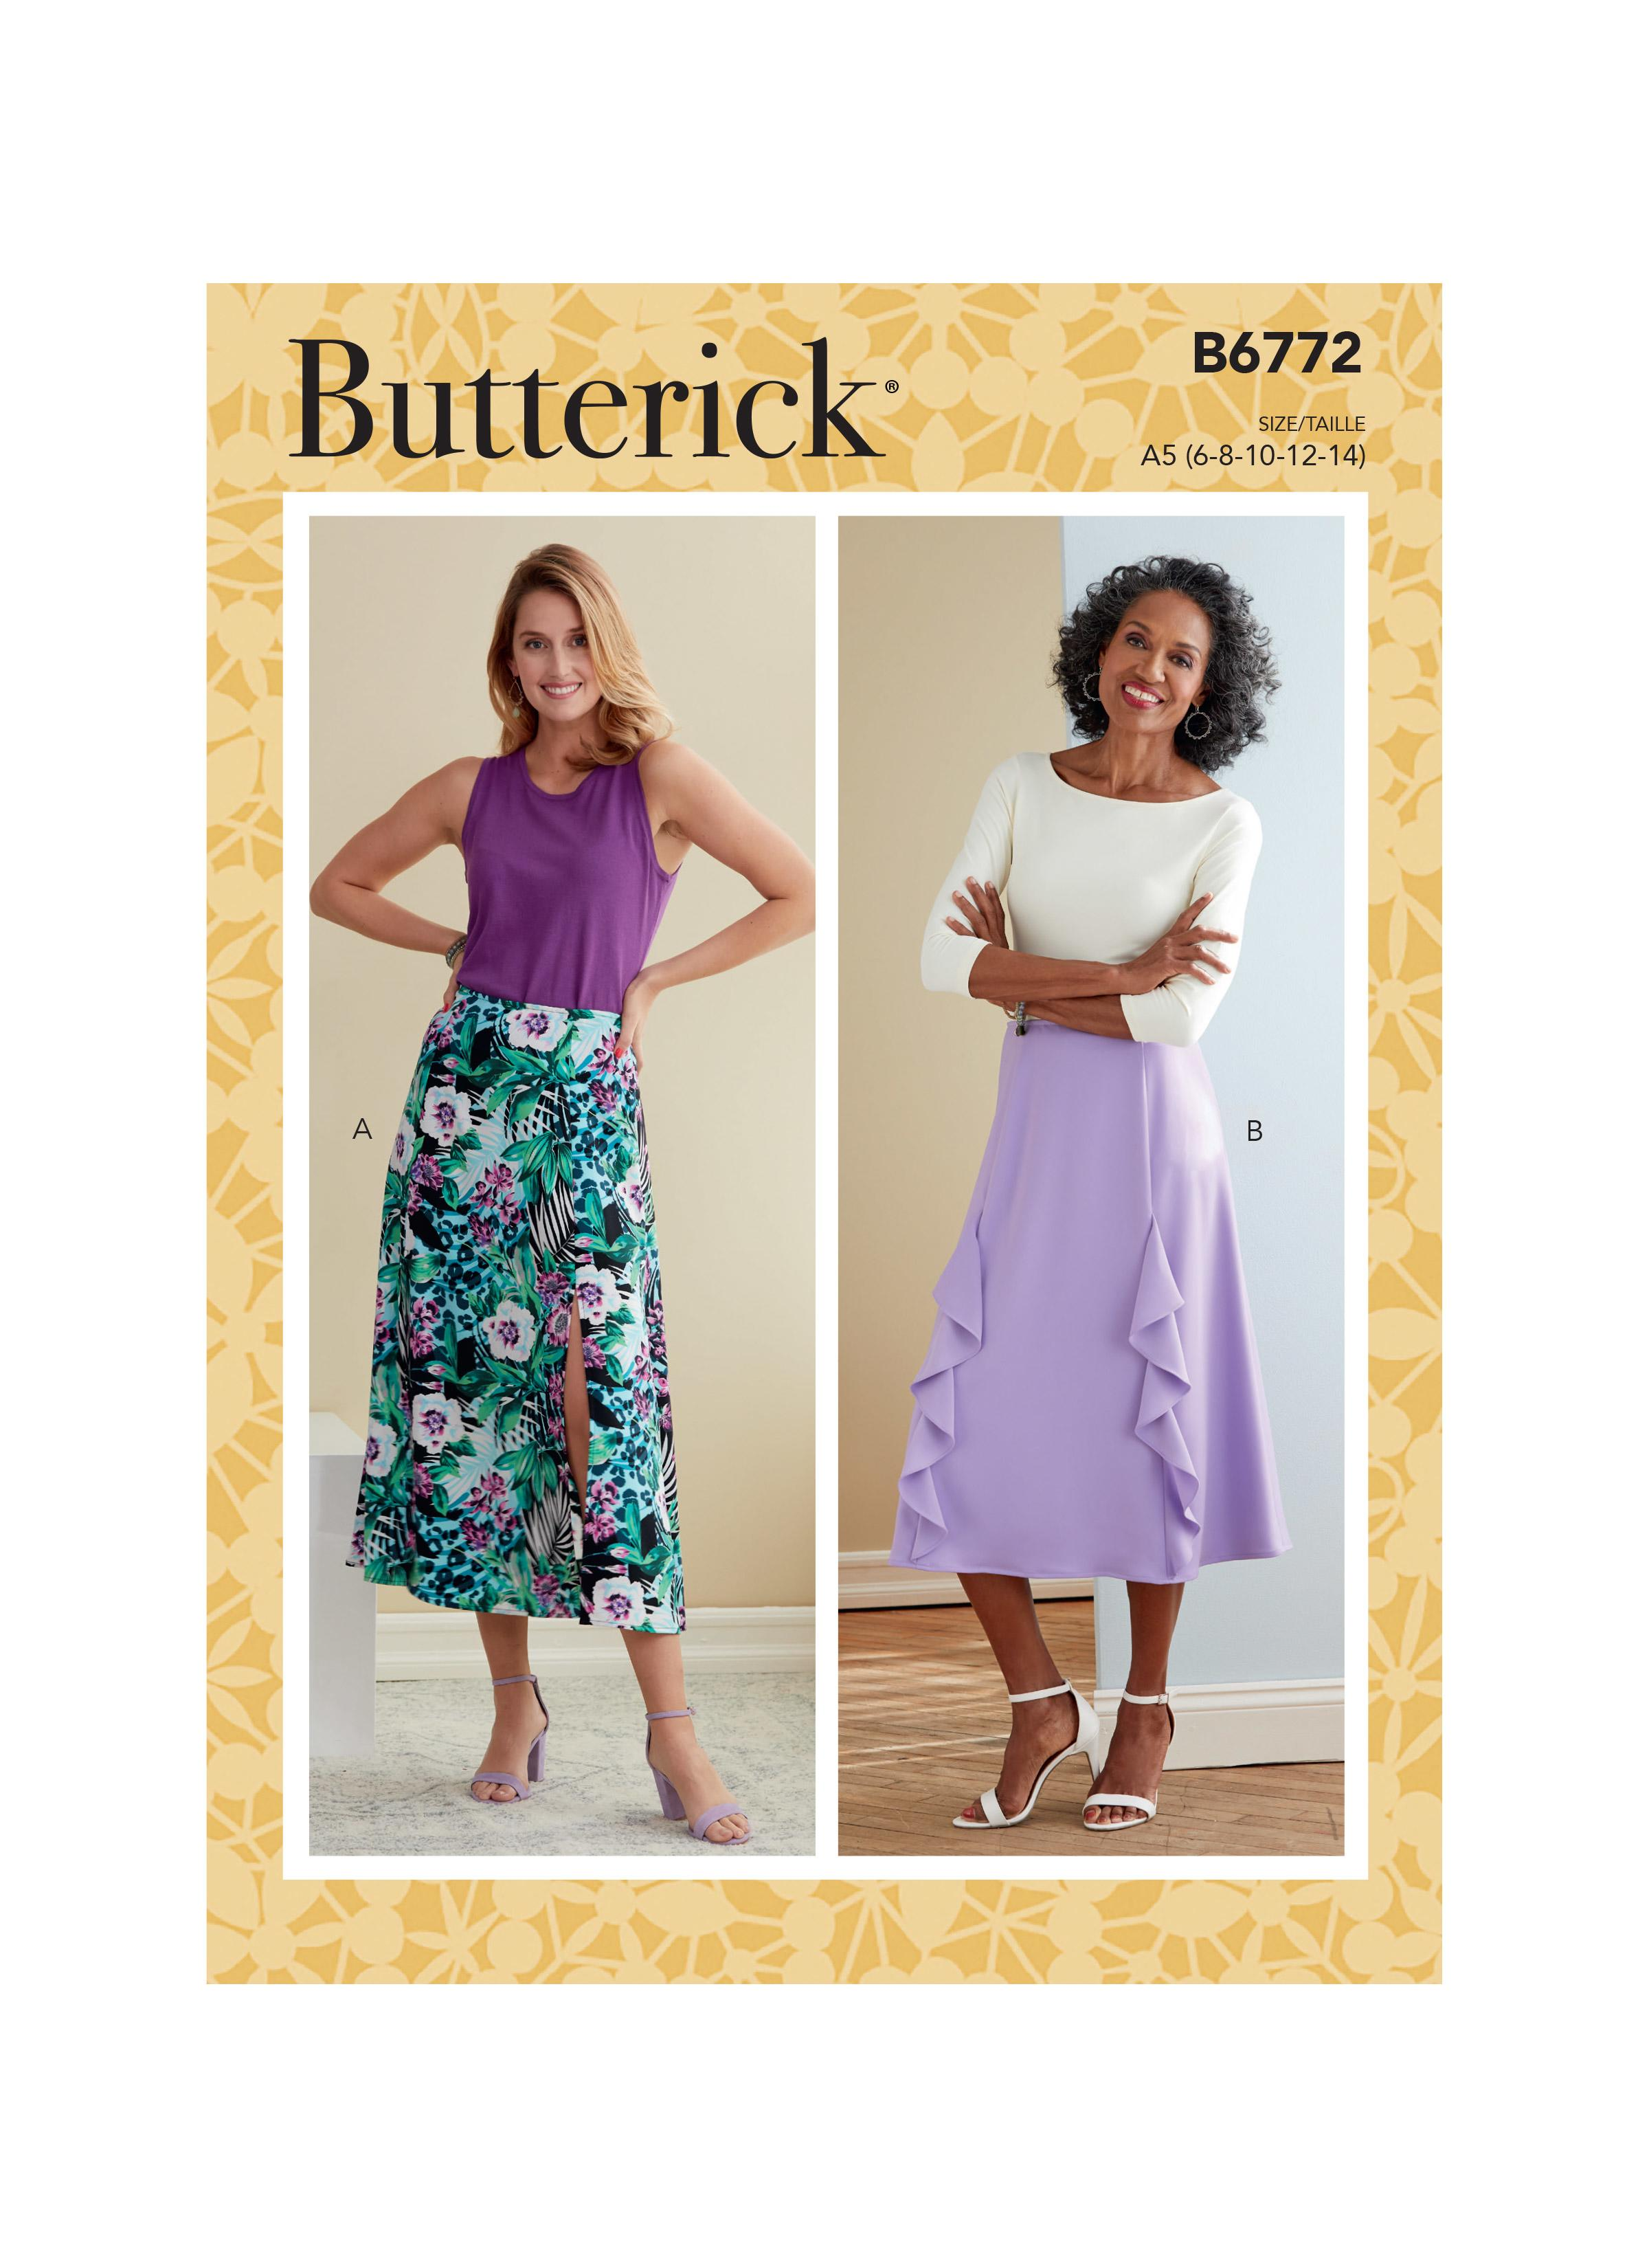 Butterick B6772 Misses' Skirt